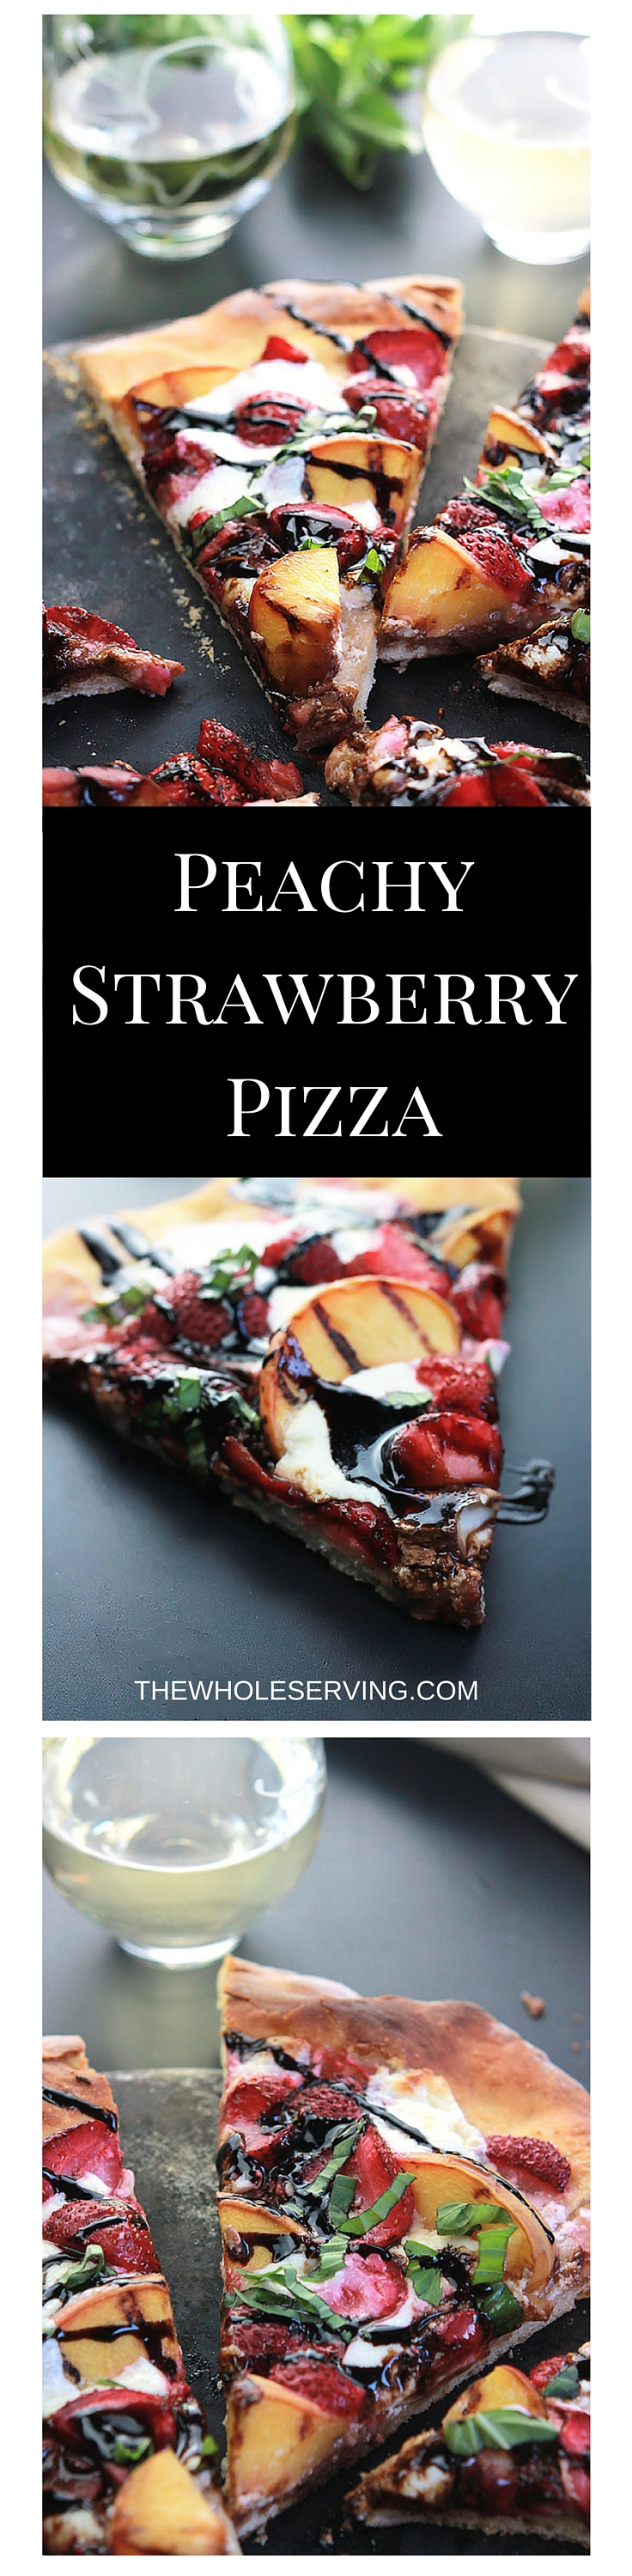 Sweet strawberries, grilled peaches and burrata cheese make this Peachy Strawberry Pizza one you'll want to make over and over .